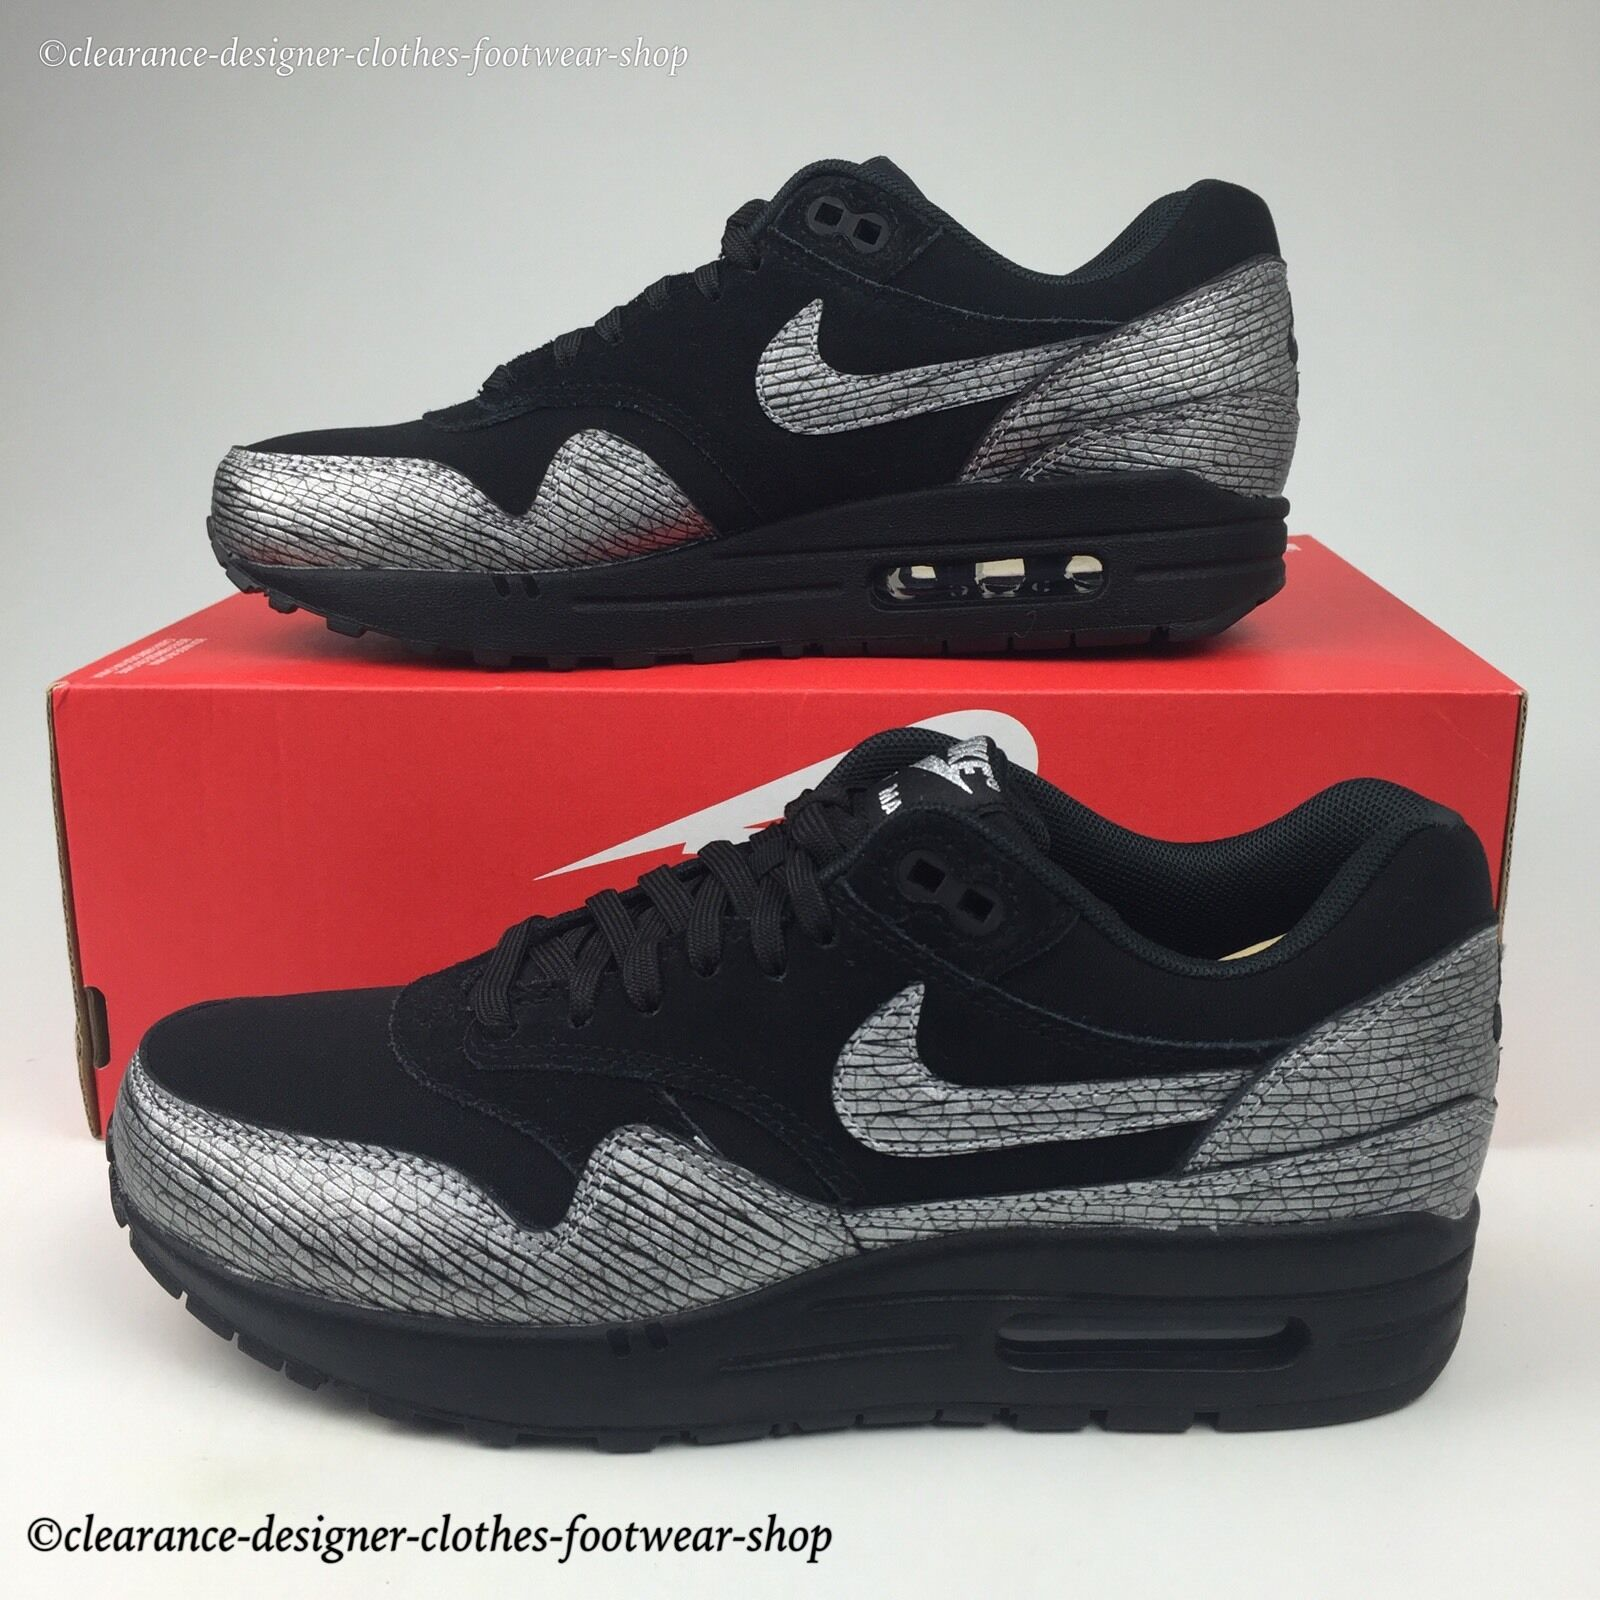 NIKE AIR MAX 1 PREMIUM PREMIUM PREMIUM TRAINERS Femme GIRLS LADIES CASUAL chaussures5  125 f16583